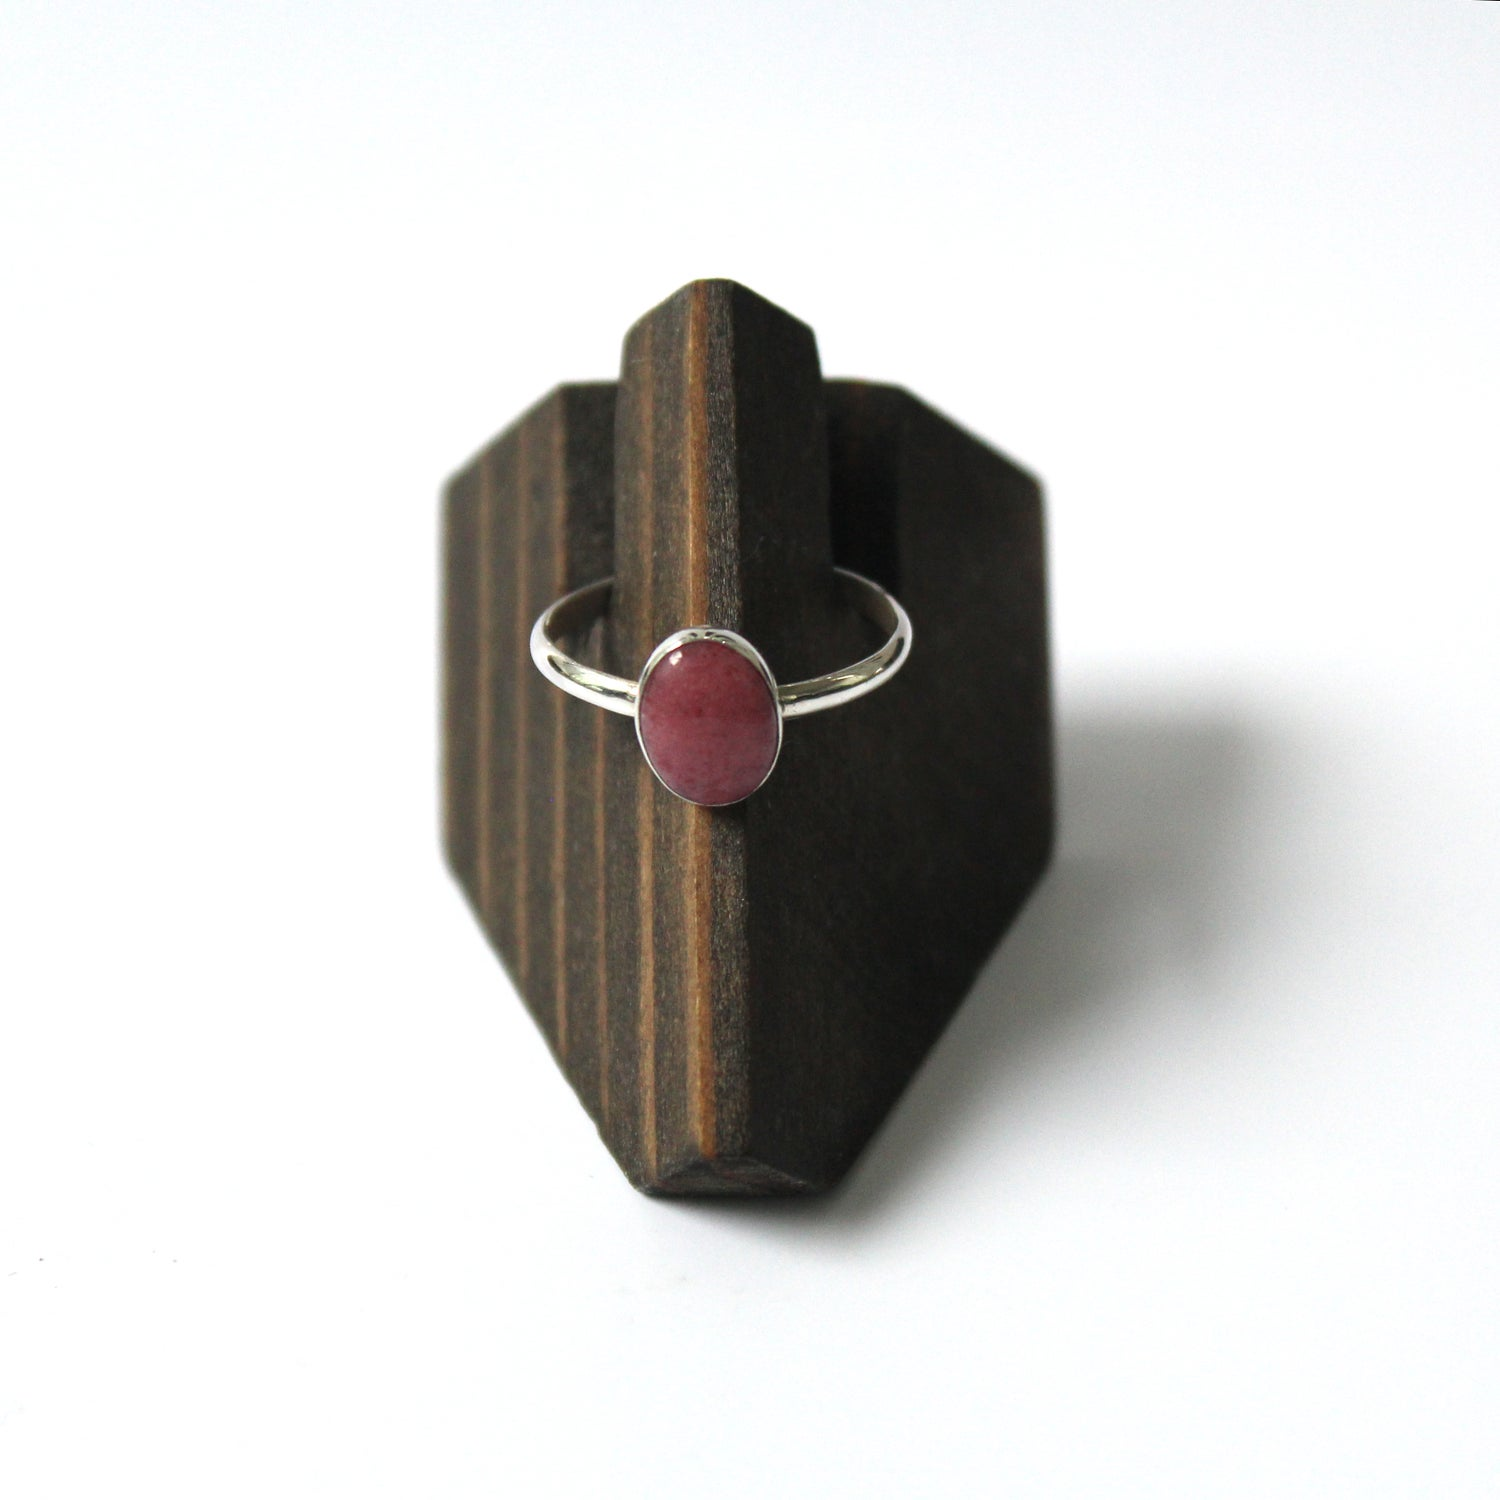 Image of Peruvian Pink Opal Sterling Silver Ring - Size 8